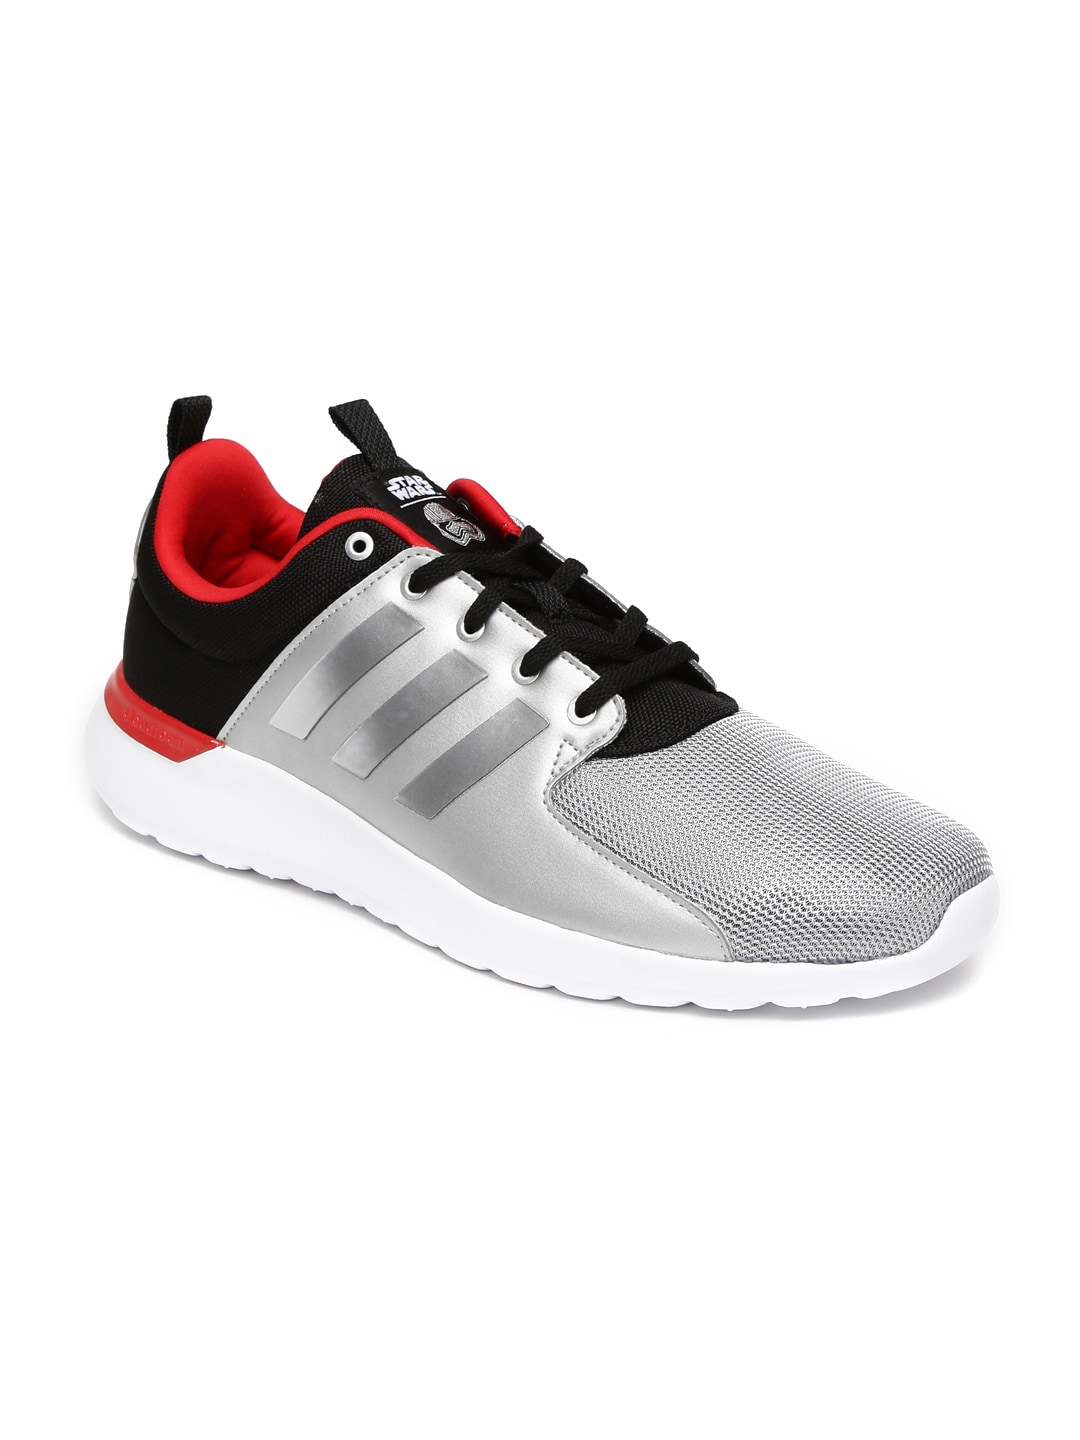 a4d1f082d533fa Adidas aw4271 Neo Men Silver Cloudfoam Lite Racer Colourblocked Sneakers-  Price in India